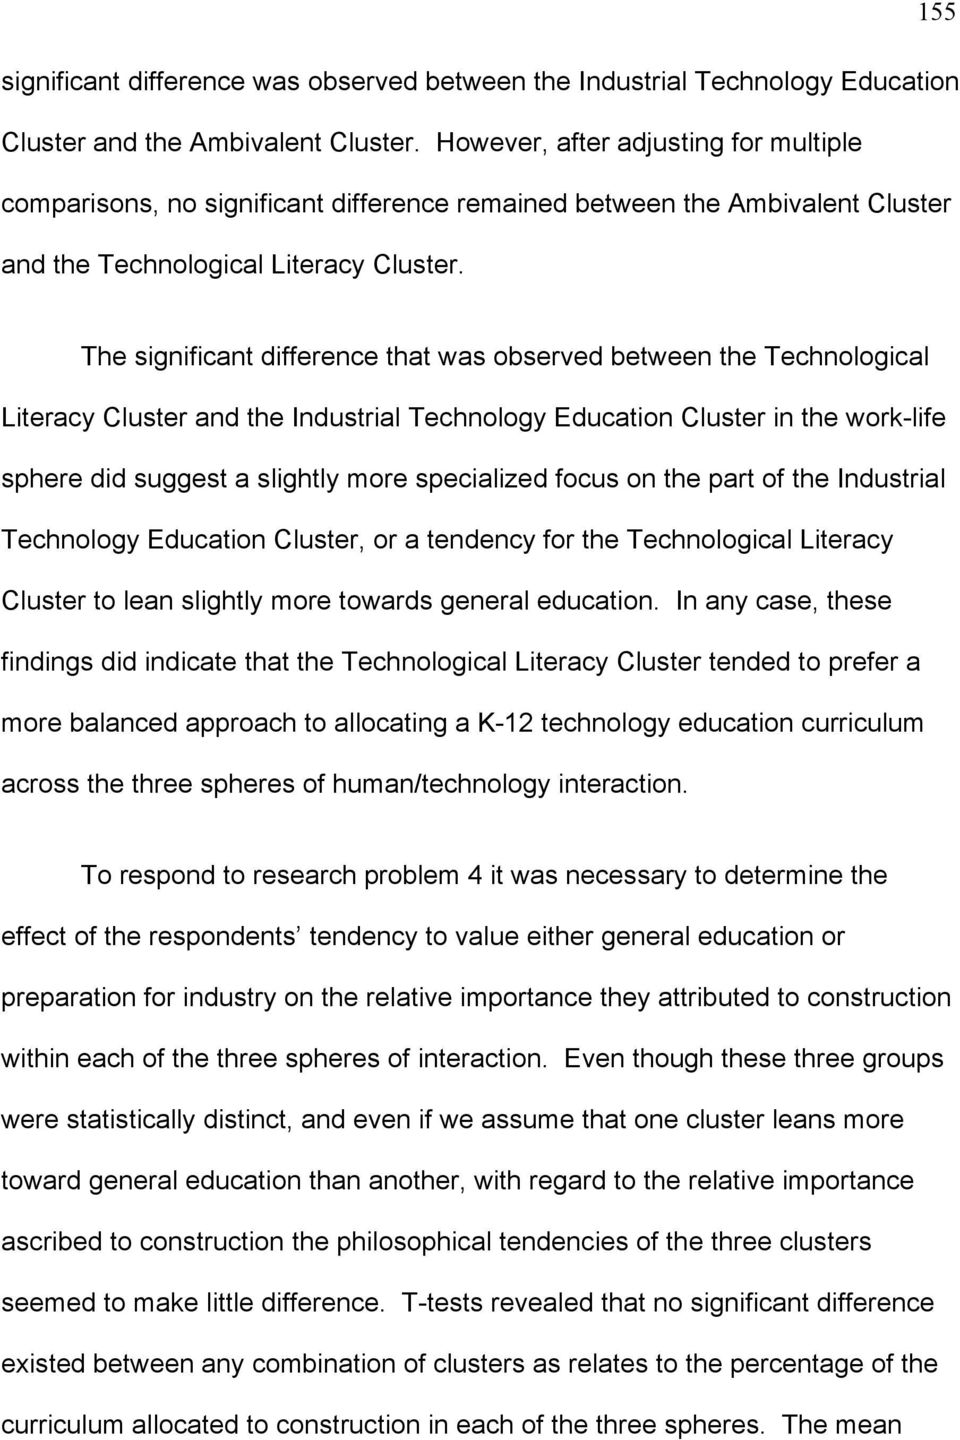 The significant difference that was observed between the Technological Literacy Cluster and the Industrial Technology Education Cluster in the work-life sphere did suggest a slightly more specialized